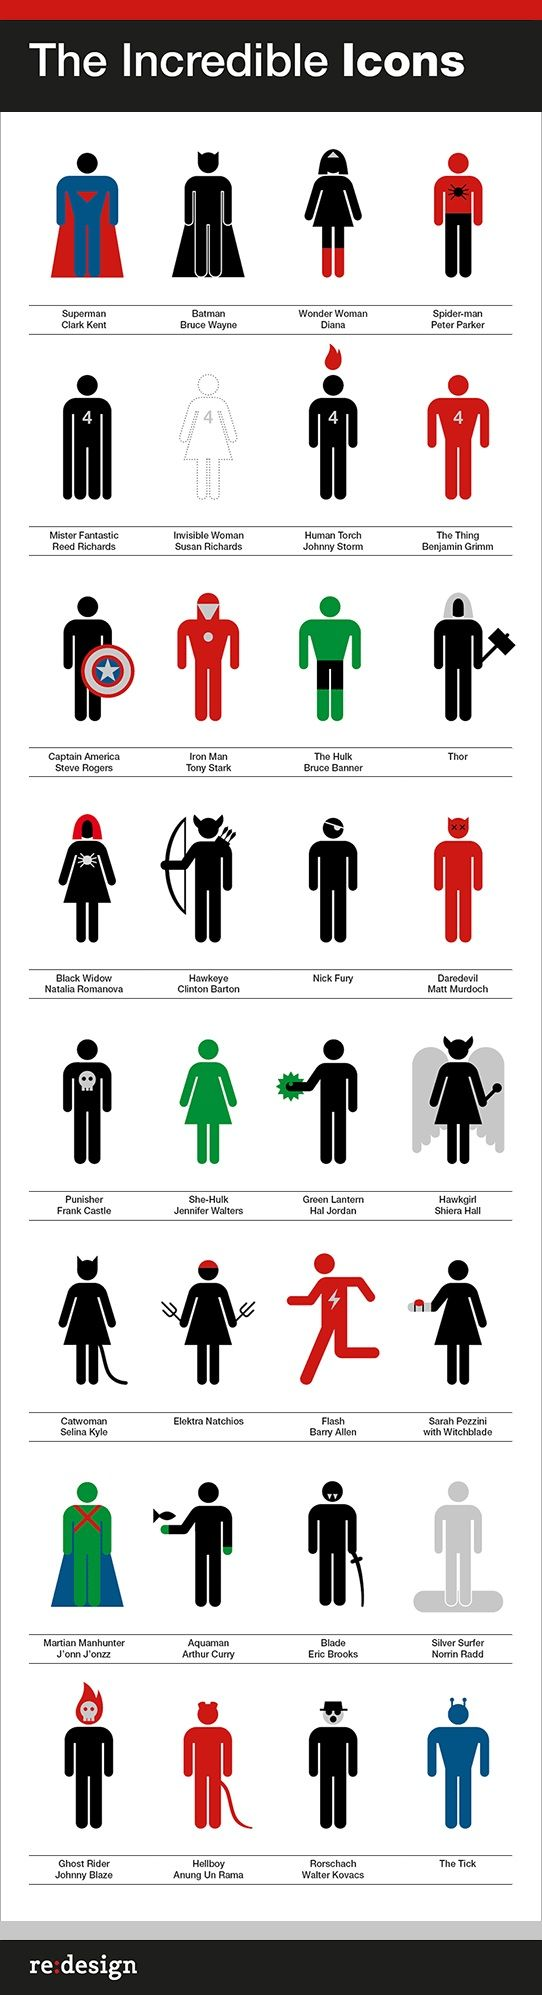 Brilliant. Simplified Super Heroes and Villains Icons.